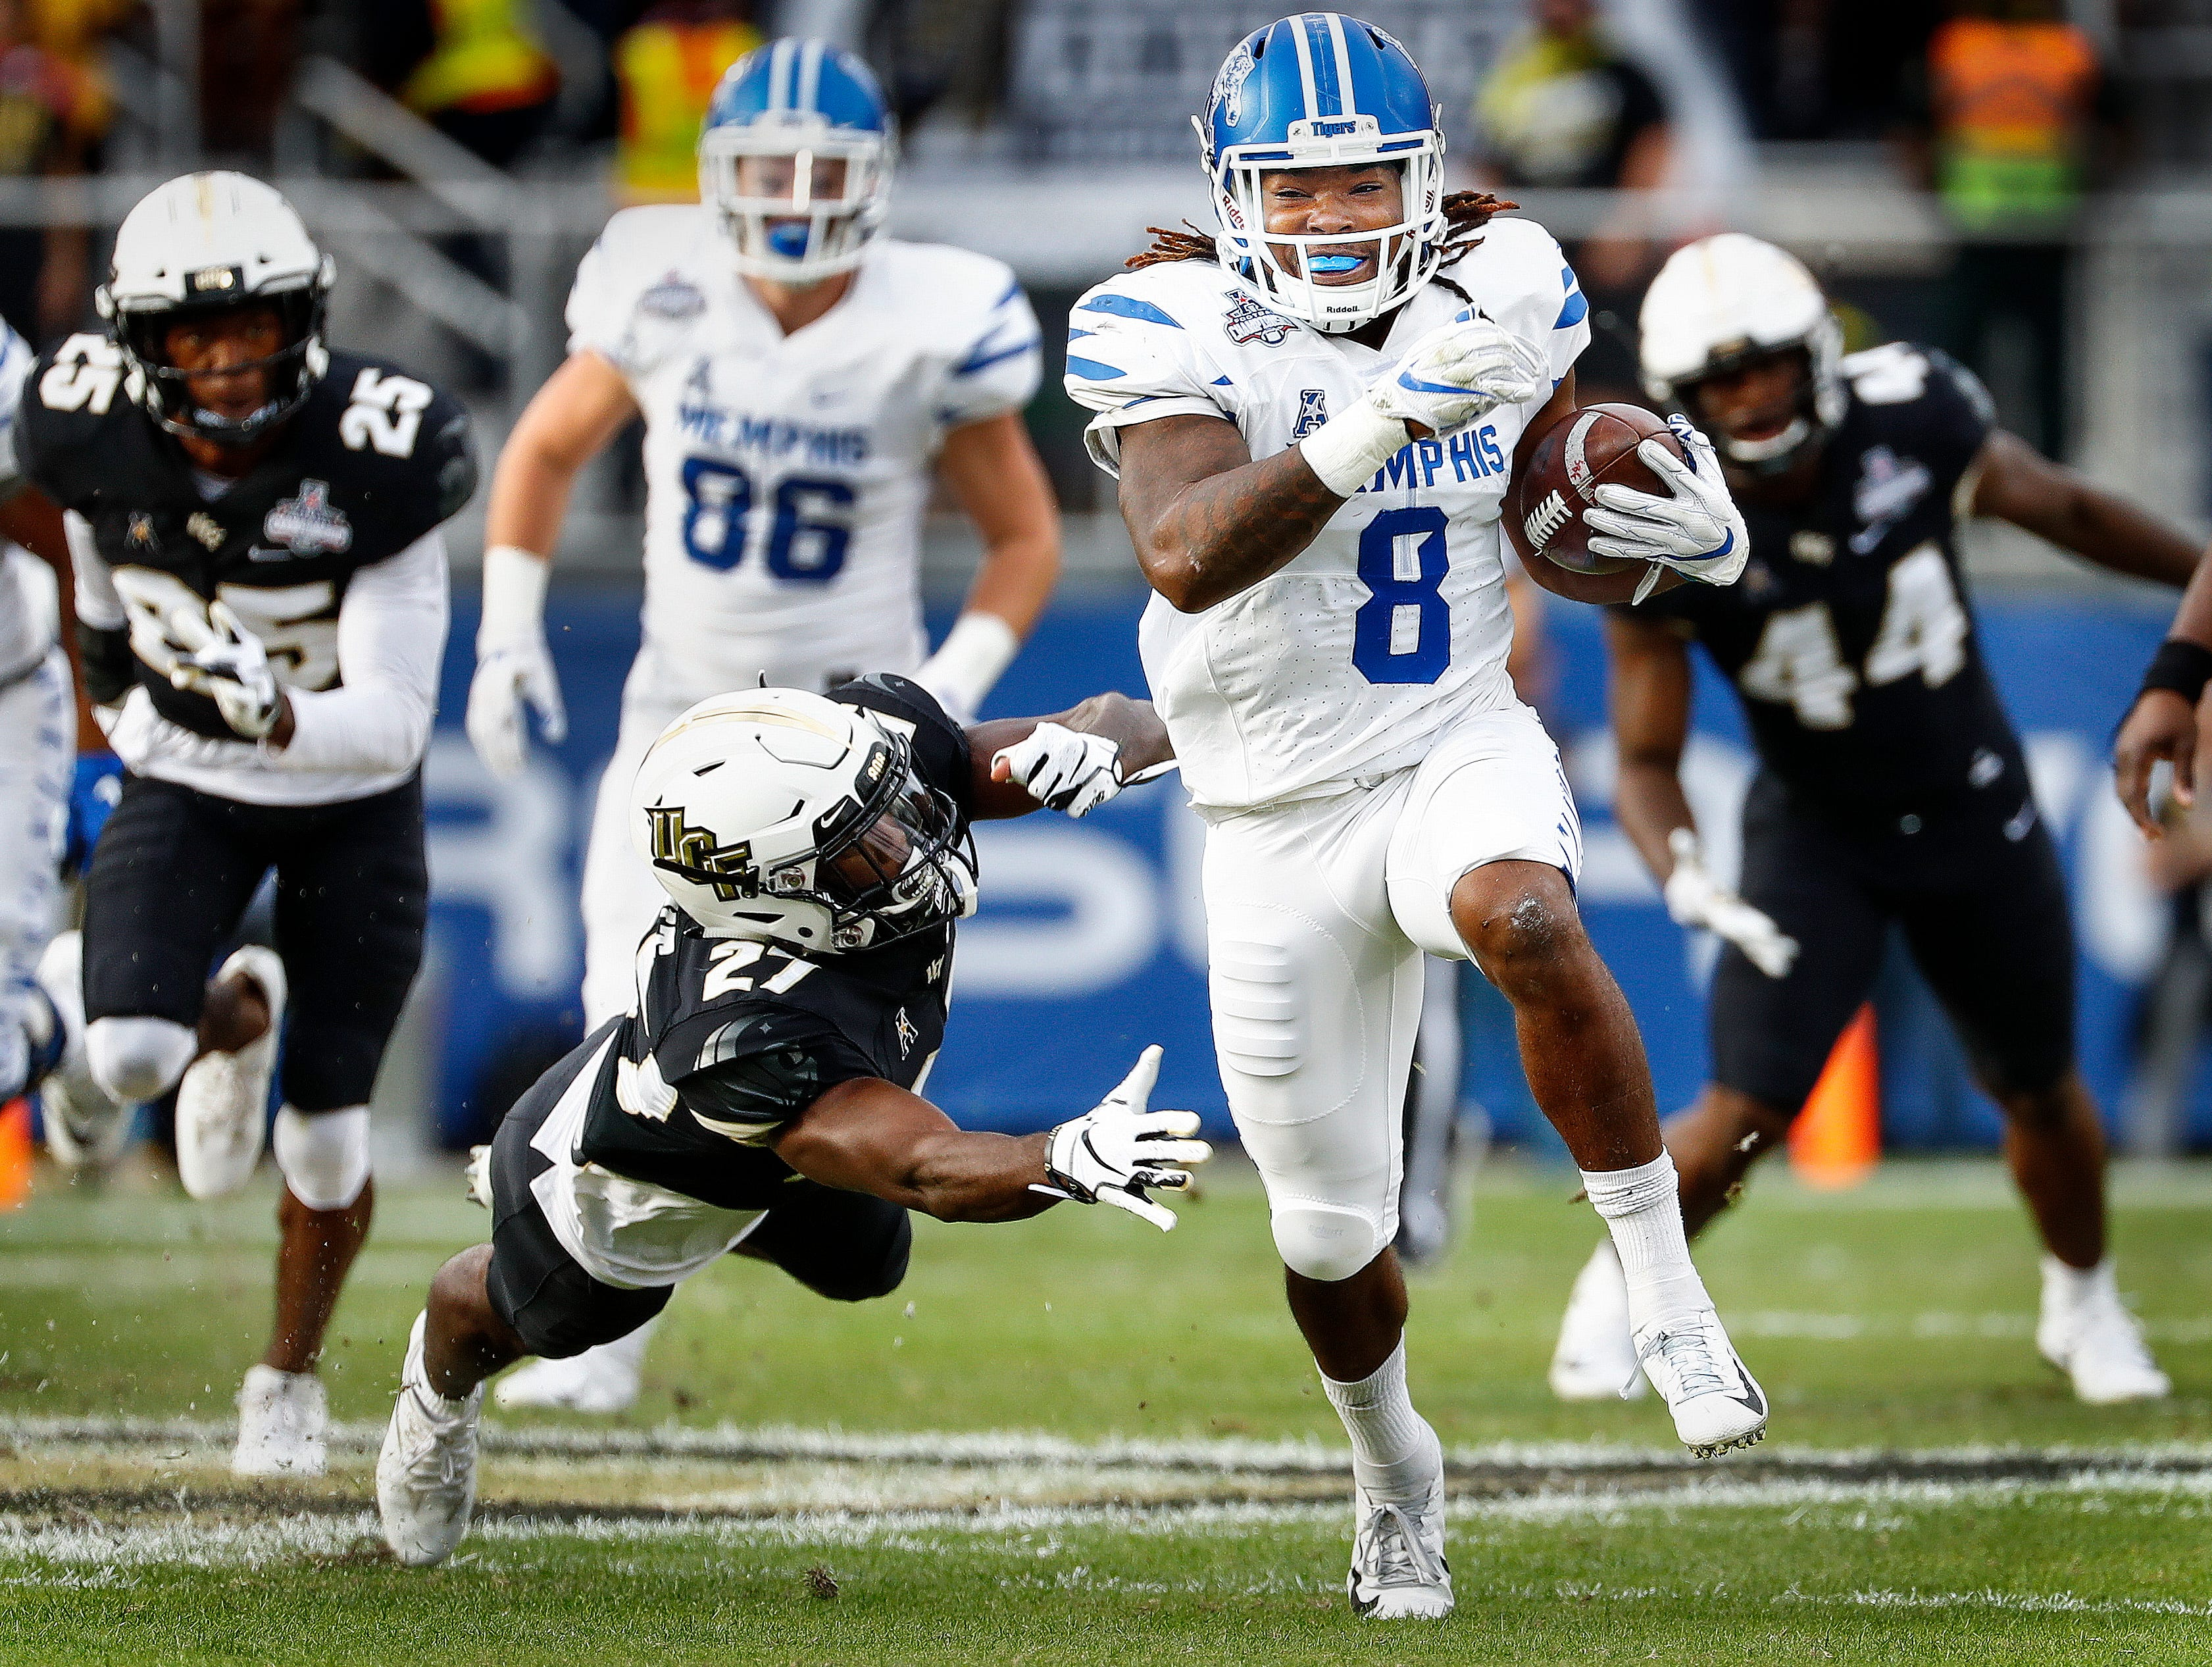 Memphis running back Darrell Henderson (right) scrambles past the UCF defense for a touchdown during action at the AAC Championship Football game Saturday, December 1, 2018 in Orlando.